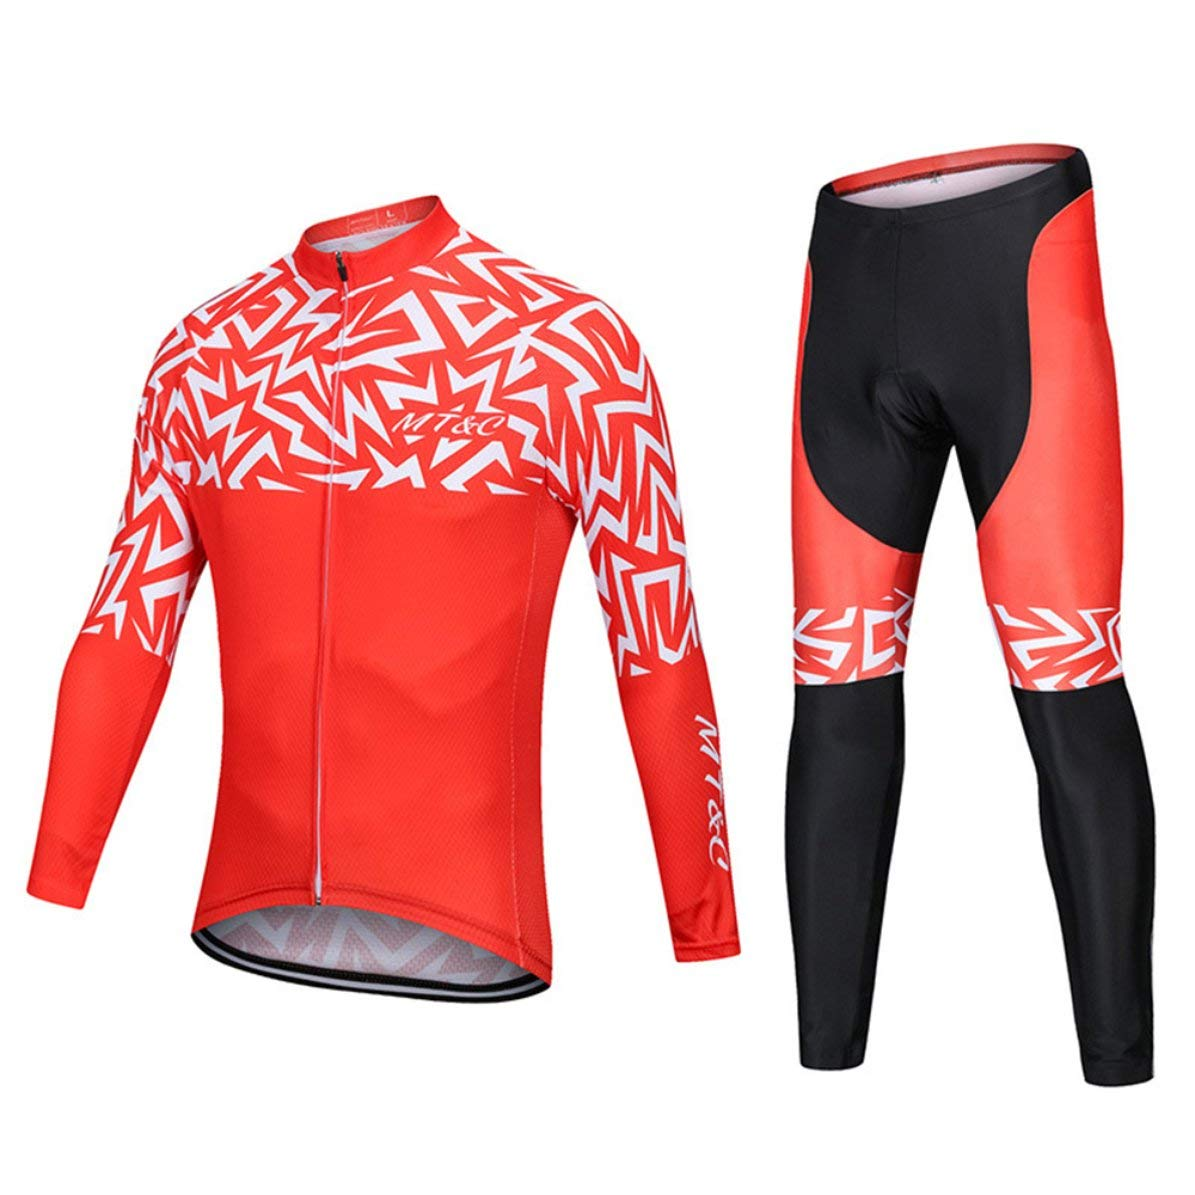 Fanboy 012 New Spring and Autumn Riding Long Sleeve Suit Wicking Breathable and Quick-Drying Outdoor Sports Bike Clothing